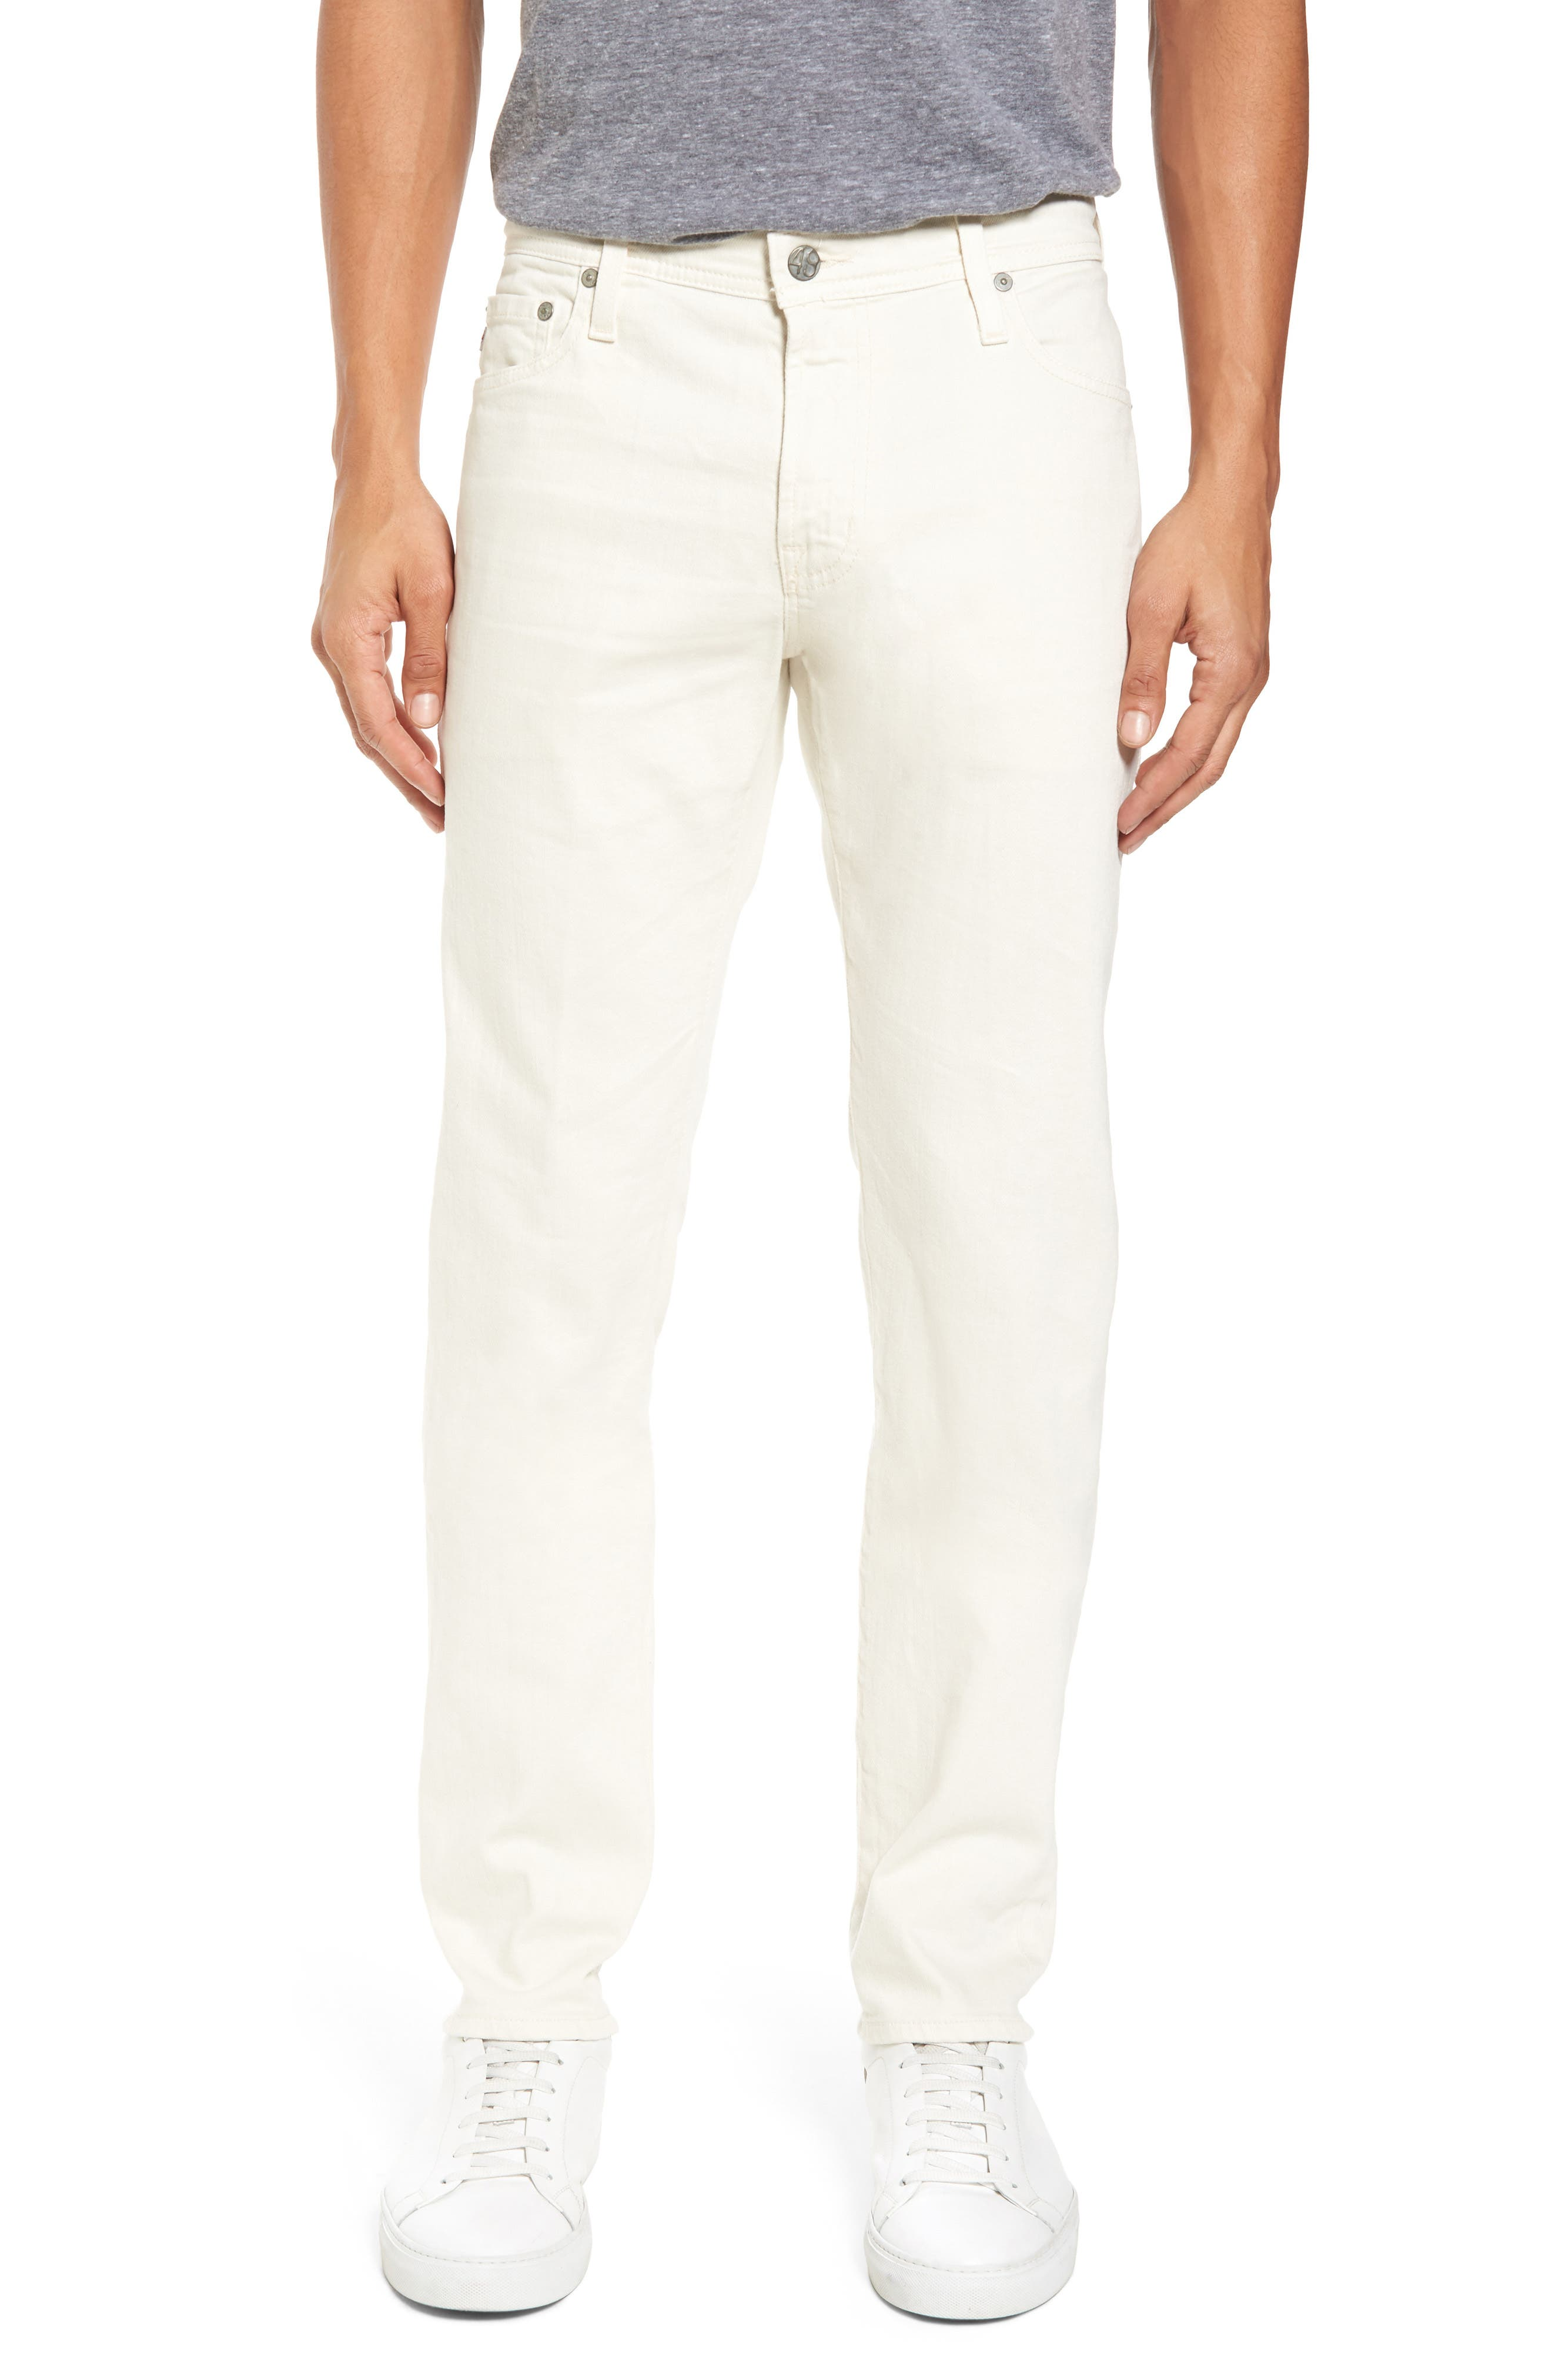 Tellis Modern Slim Twill Pants,                         Main,                         color, 1 Year Moon Glade